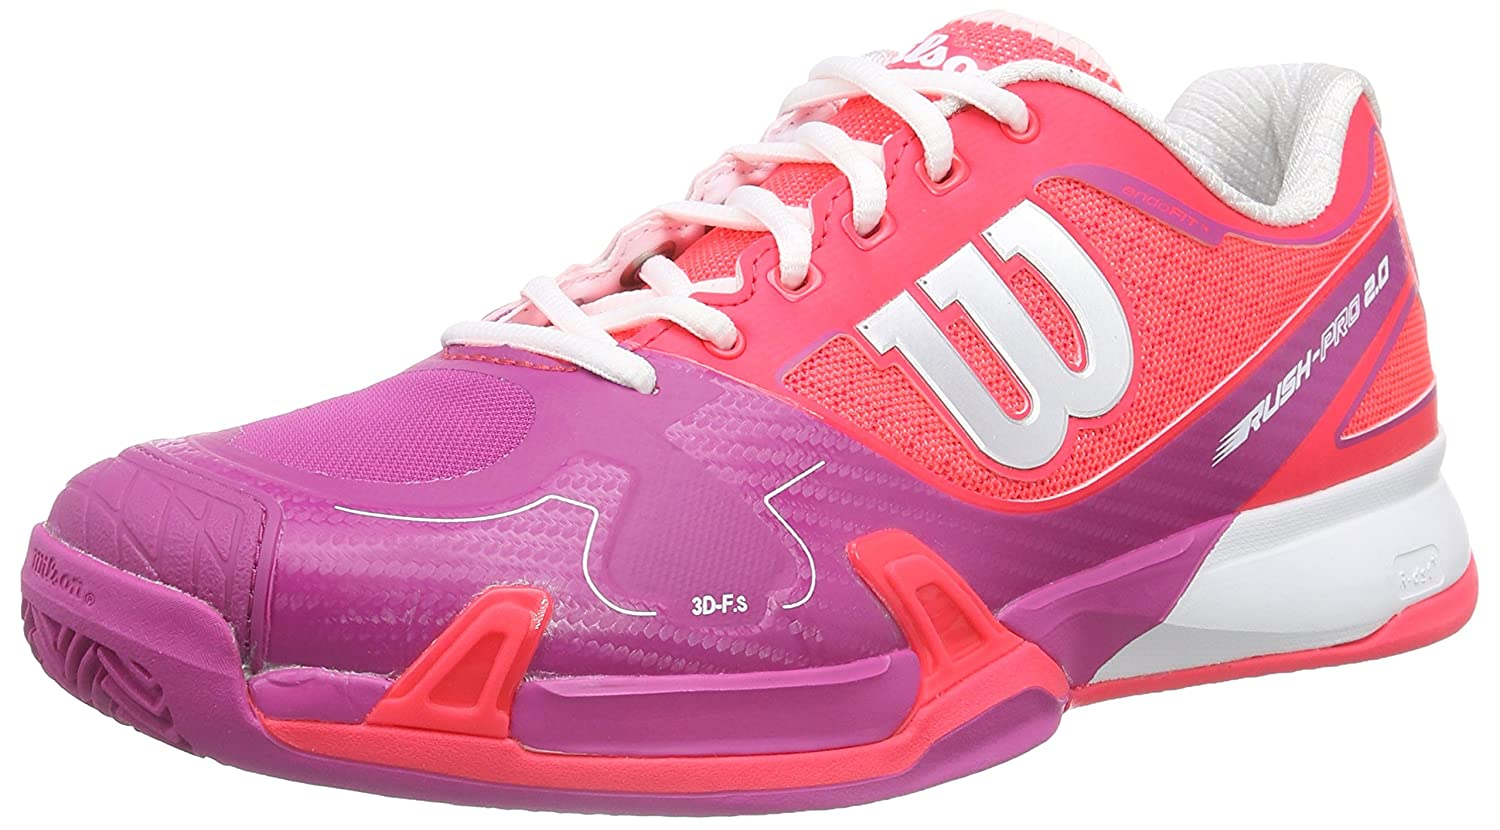 Wilson Rush Pro 2.0 Clay Court W Neon Red W 4.5, Chaussures spécial Tennis pour Femme 41 1/3 WRS319700E075